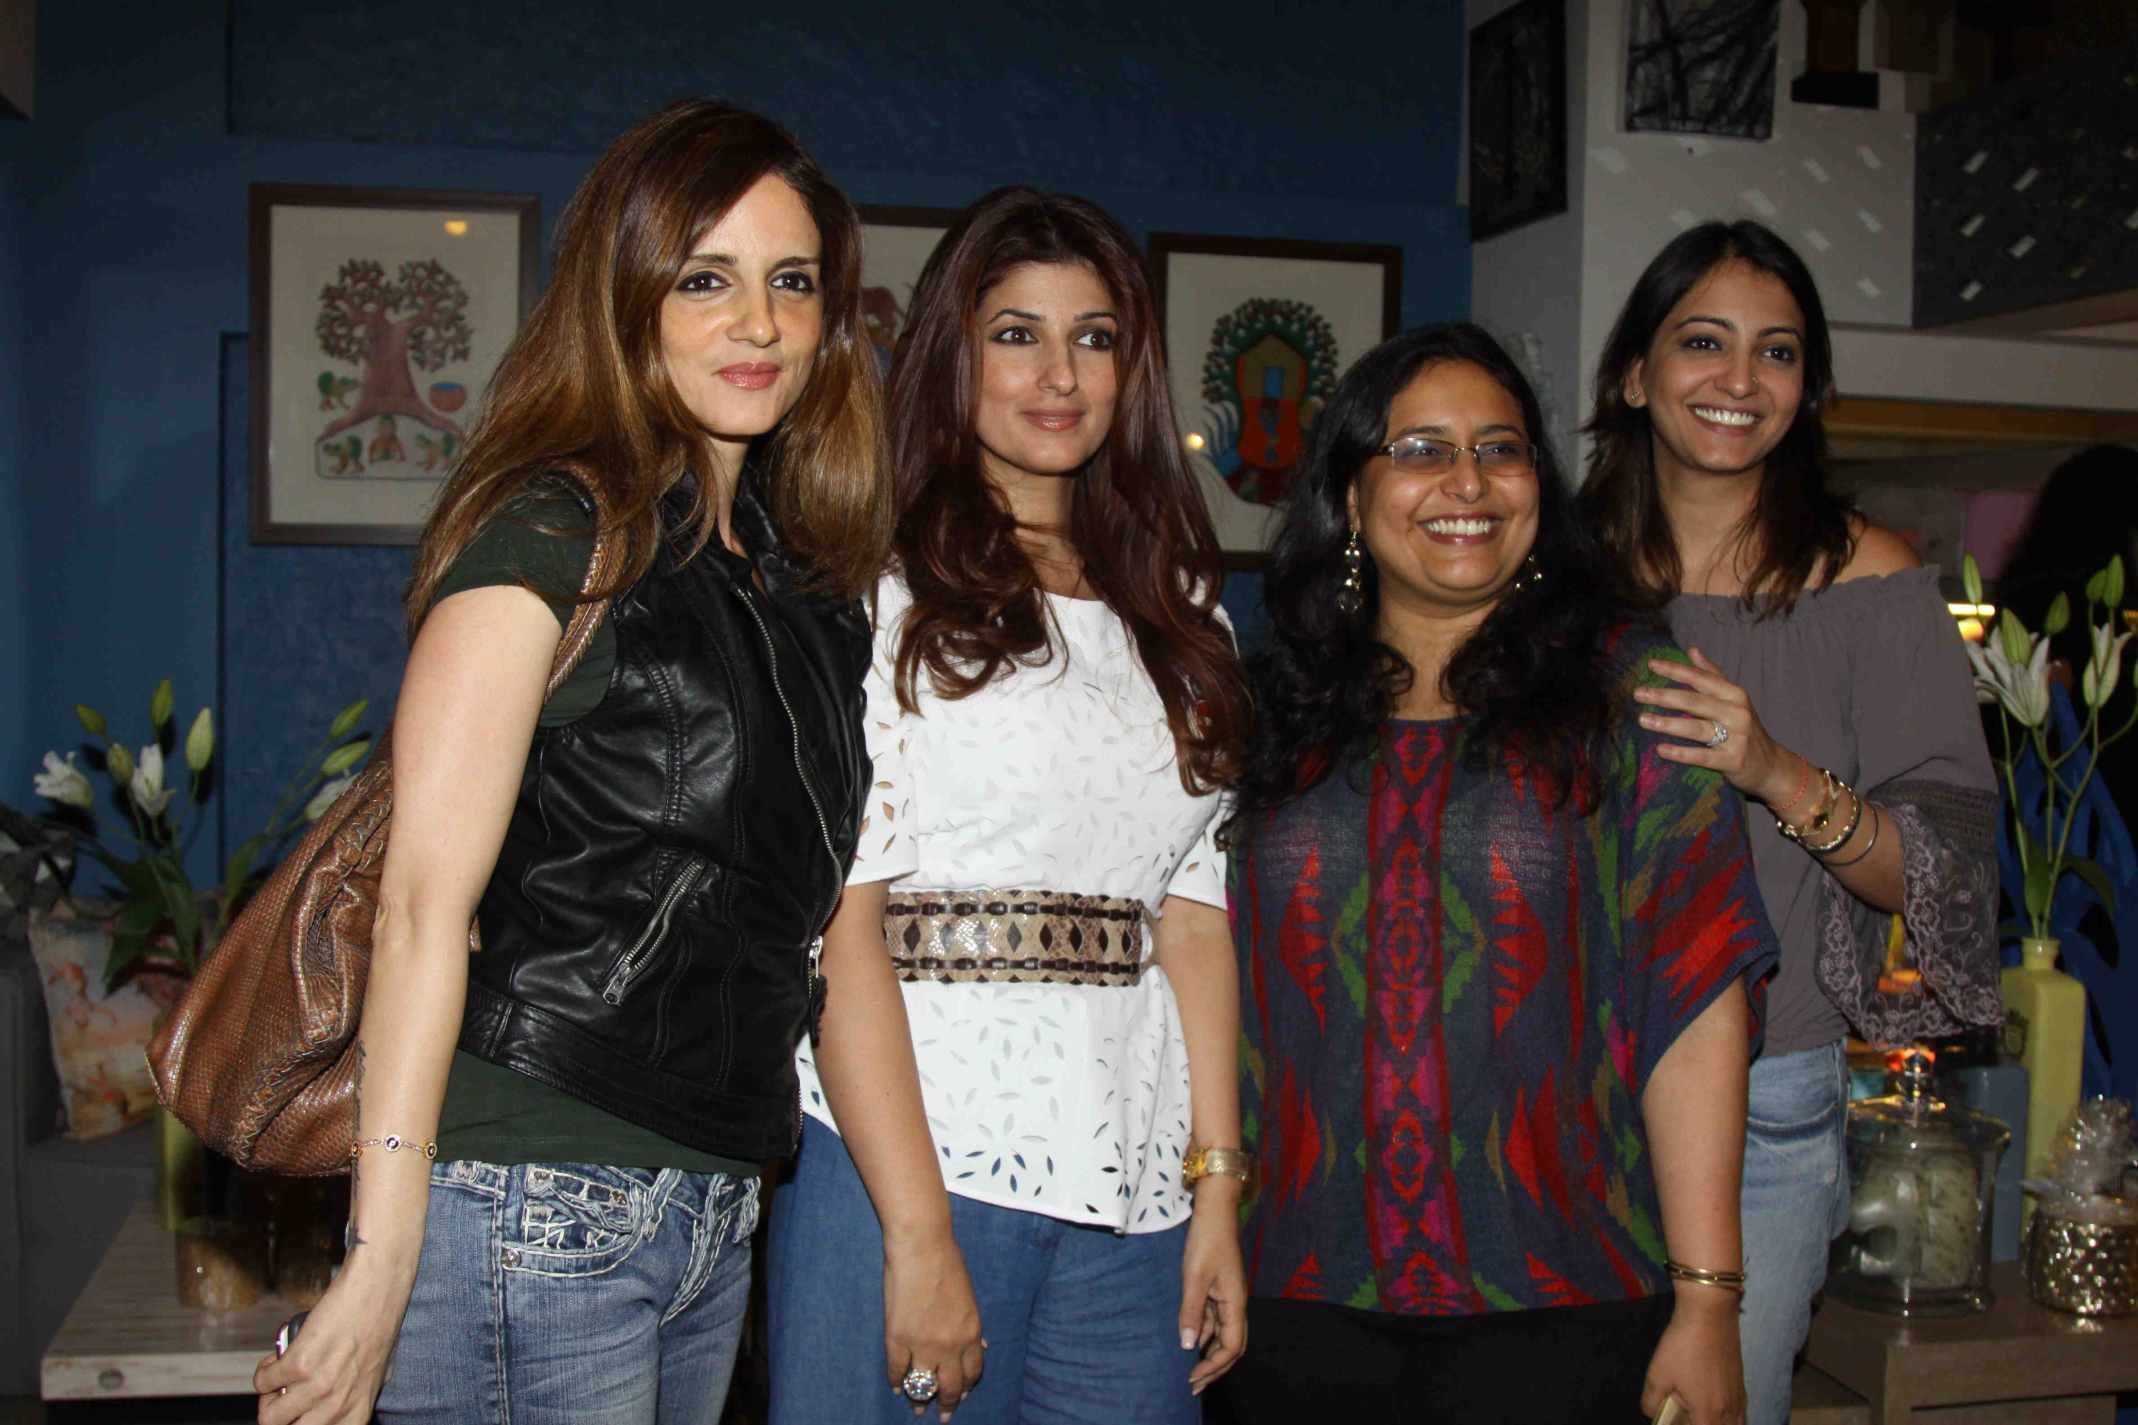 Twinkle Khanna Launches a New Range of Home Decor Products